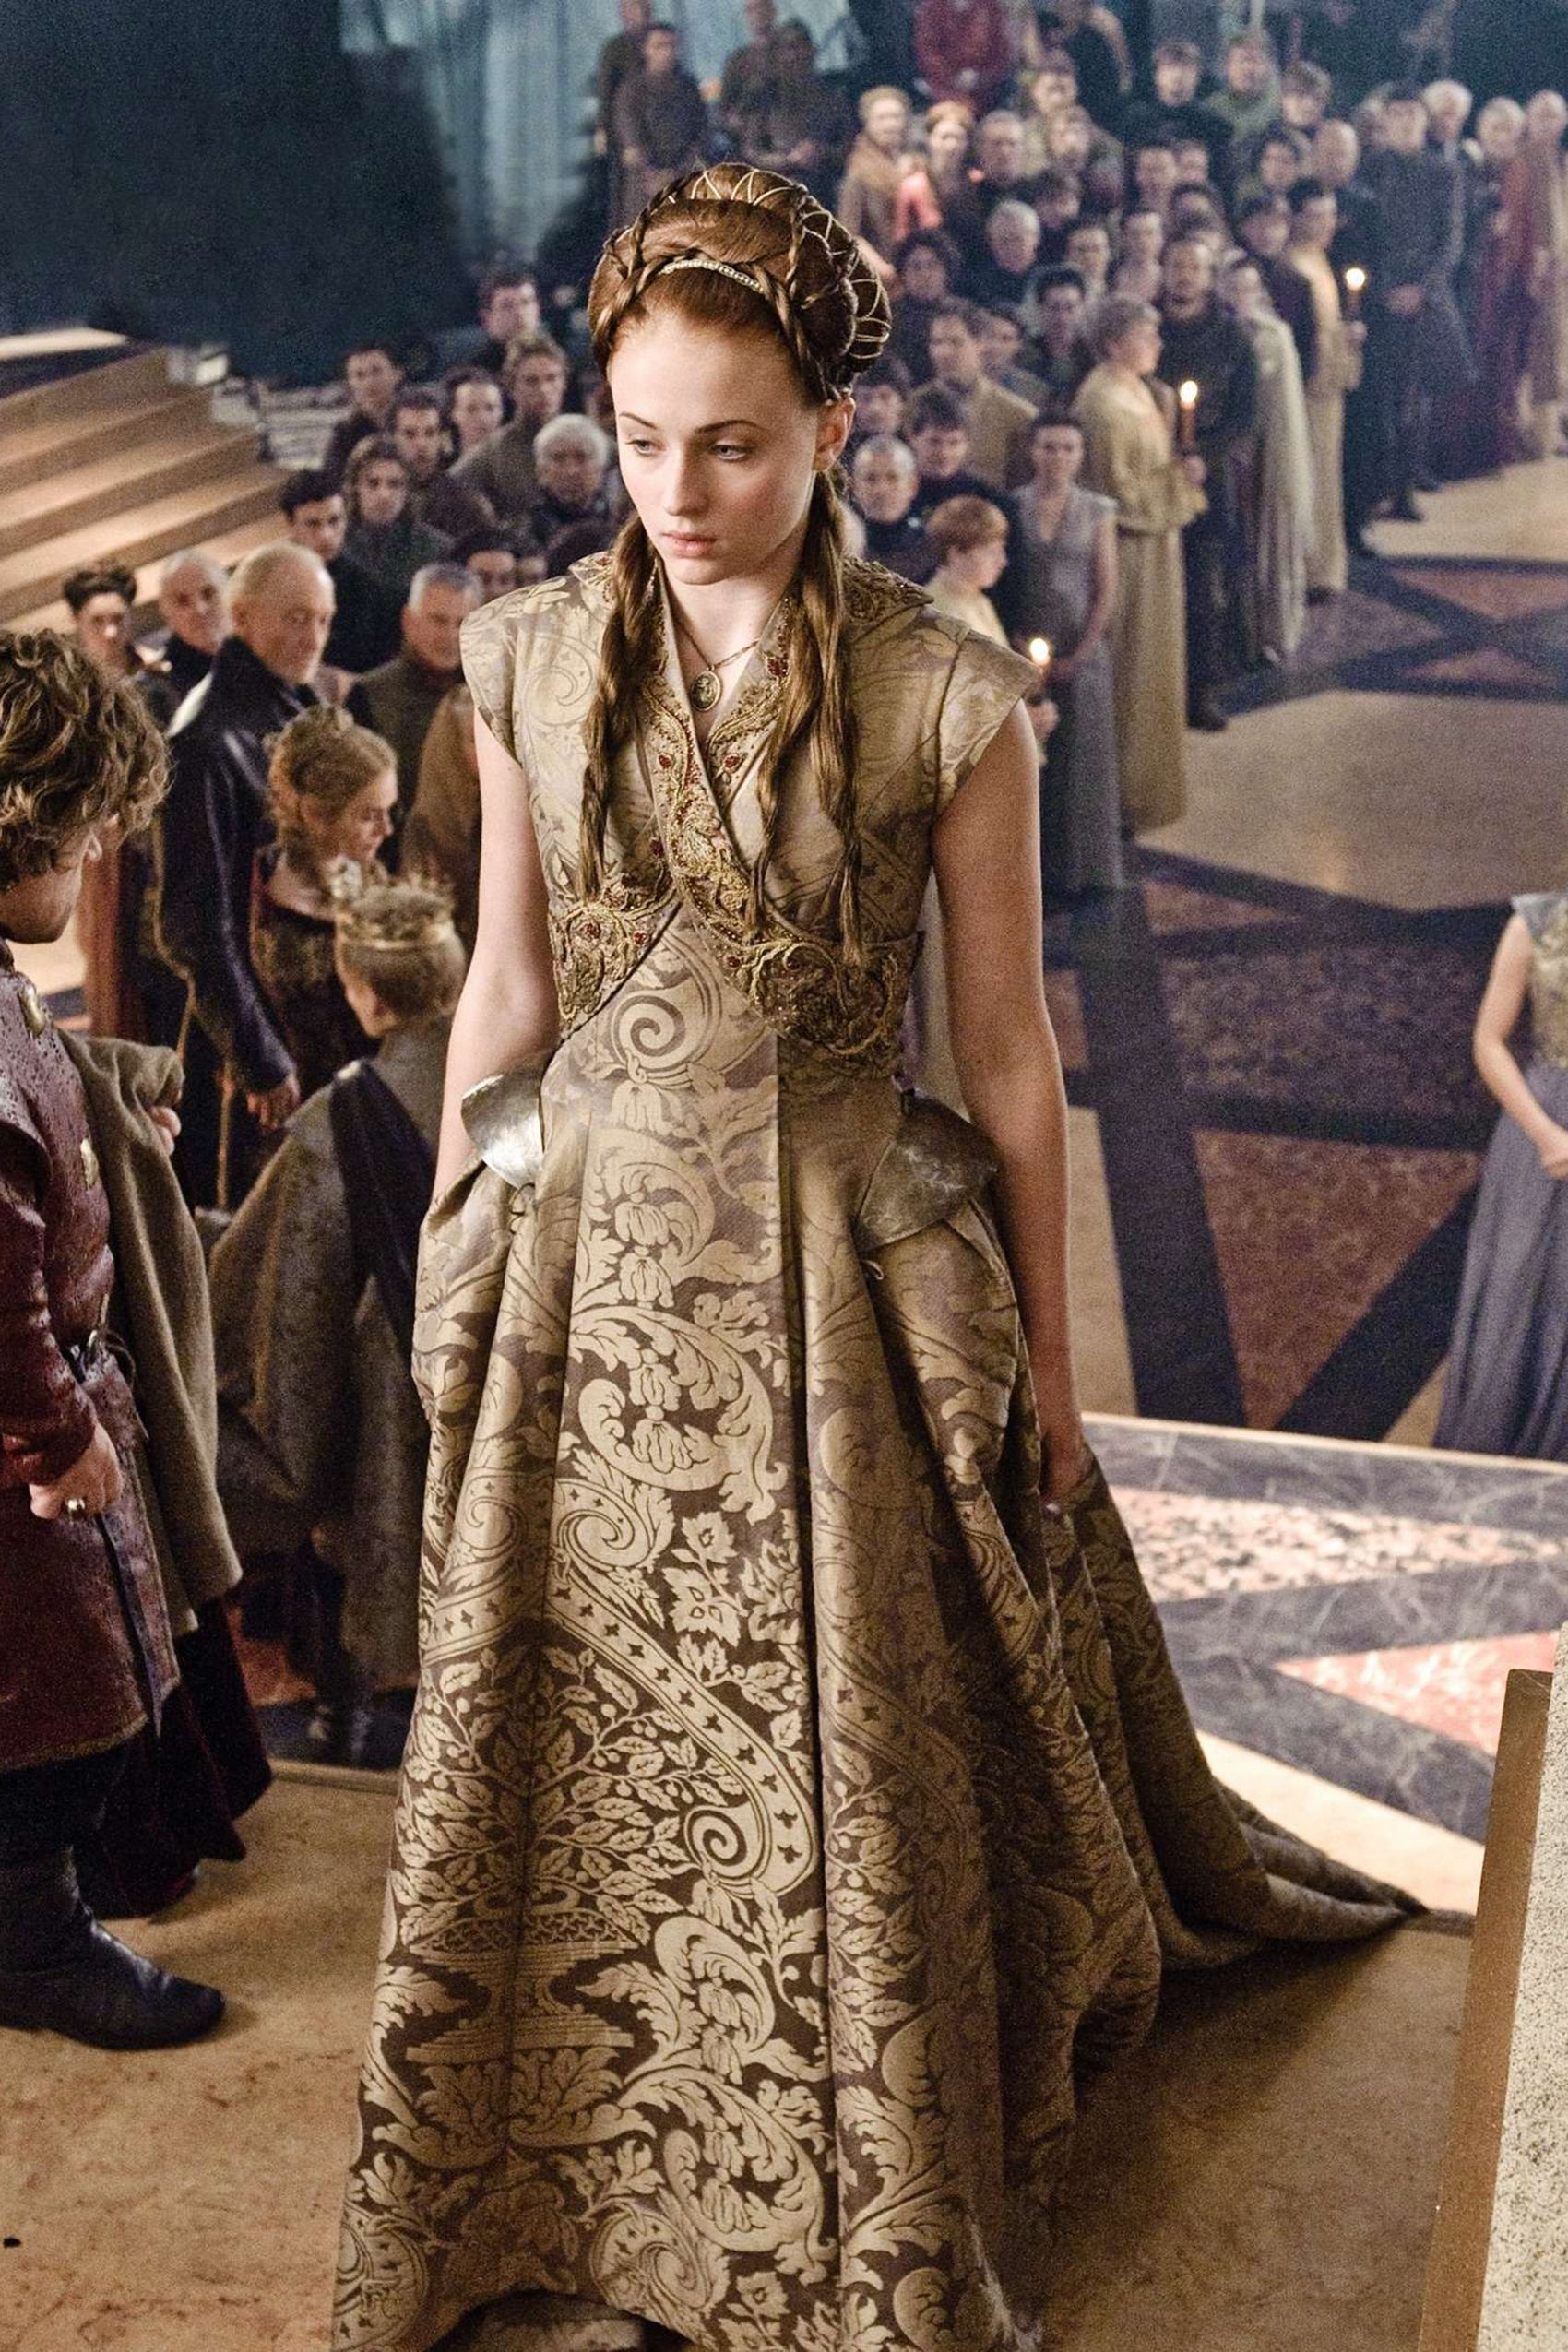 45 Best Game of Thrones Outfits,Game of Thrones\u0027 Most Fashionable Moments